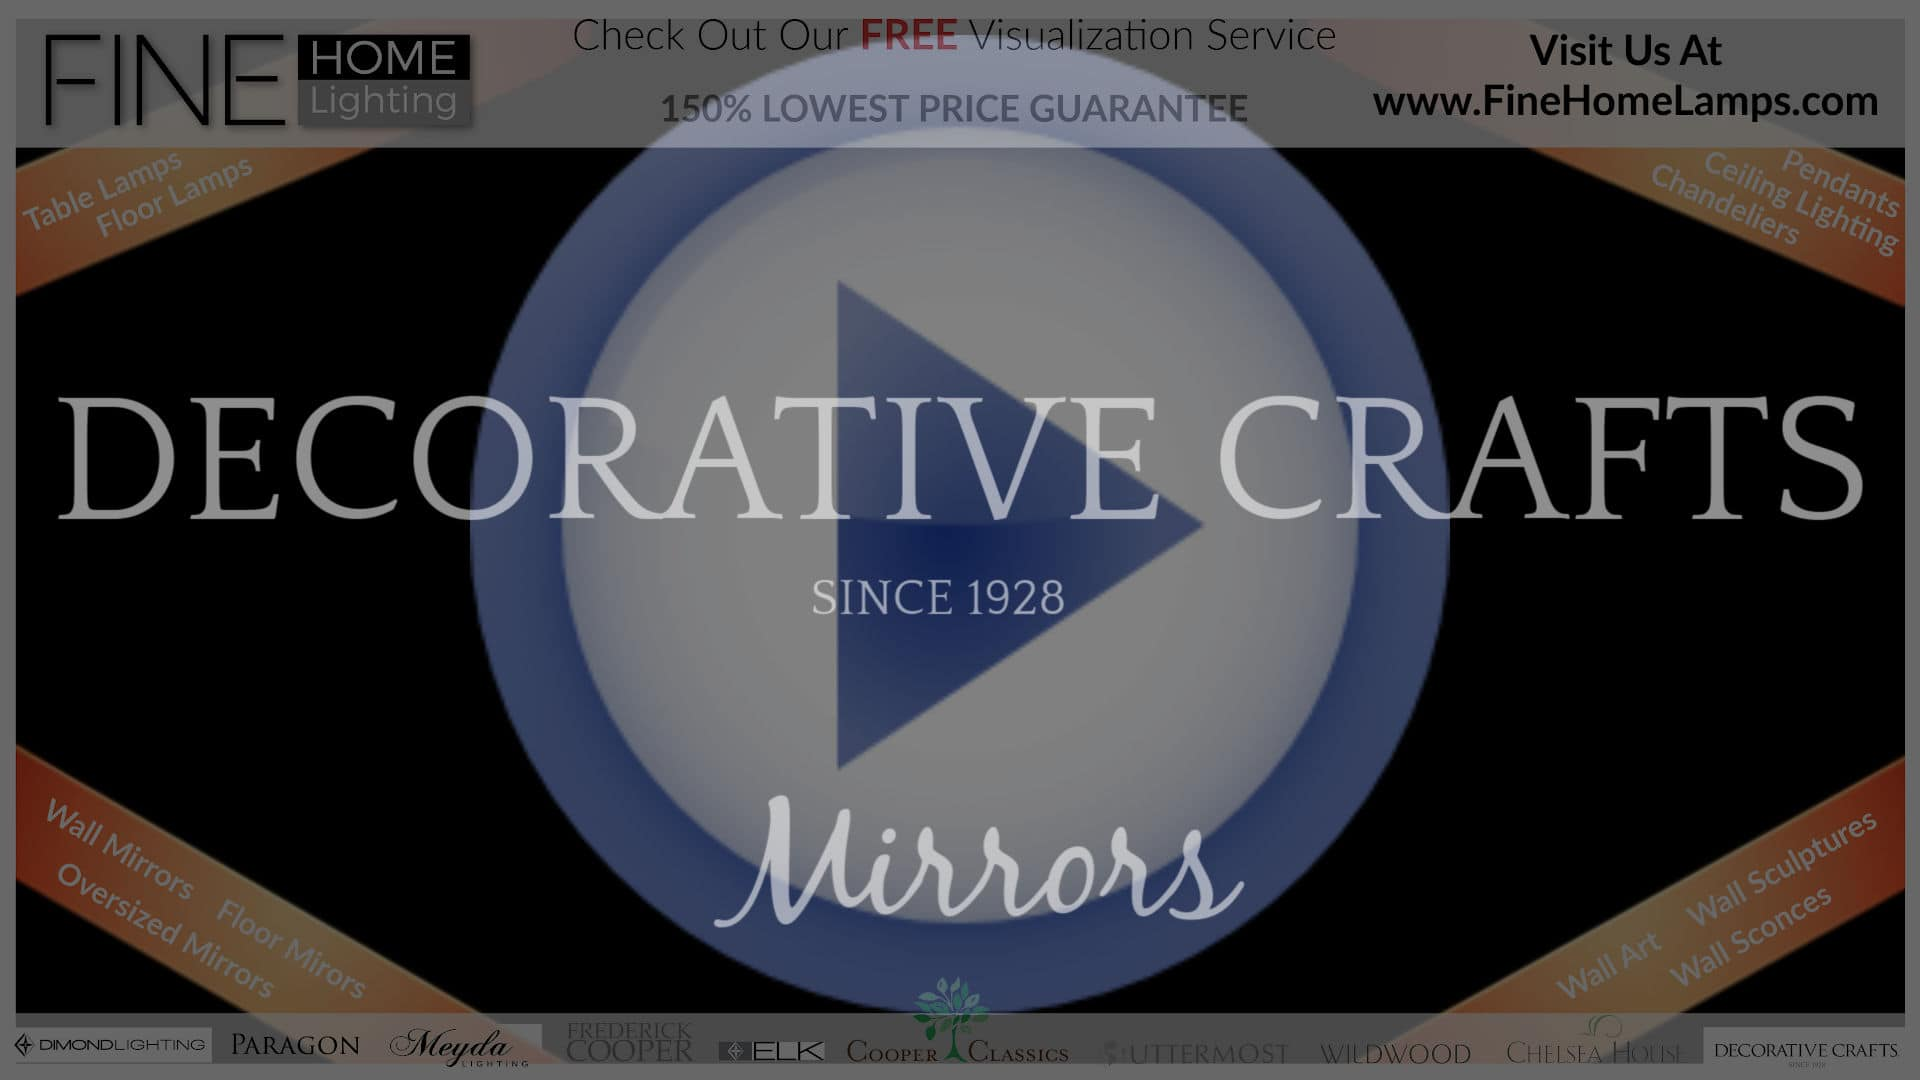 DECORATIVE-CRAFTS-Mirrors-Thanks-for-watching-this-video-Get-an-additional-15-percent-off-your-next-purchase-Use-Coupon-Code-VIDEO-2